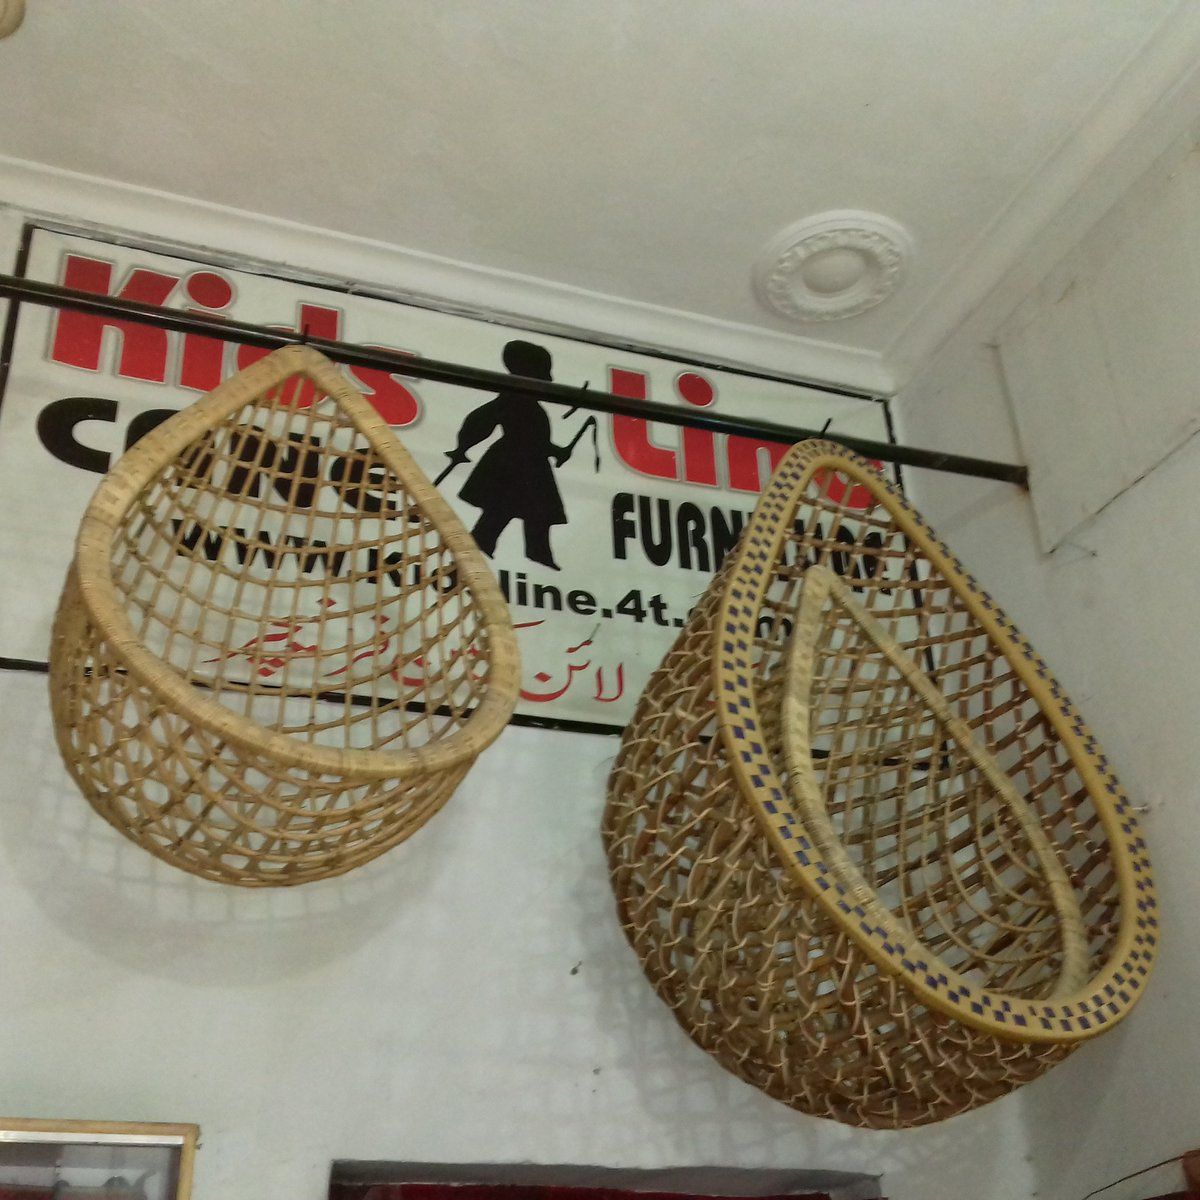 hanging chair lahore office caster replacement kidsline cane house on twitter hangingchair now avialble in pakistan at kids line furniture bhatti lowermall